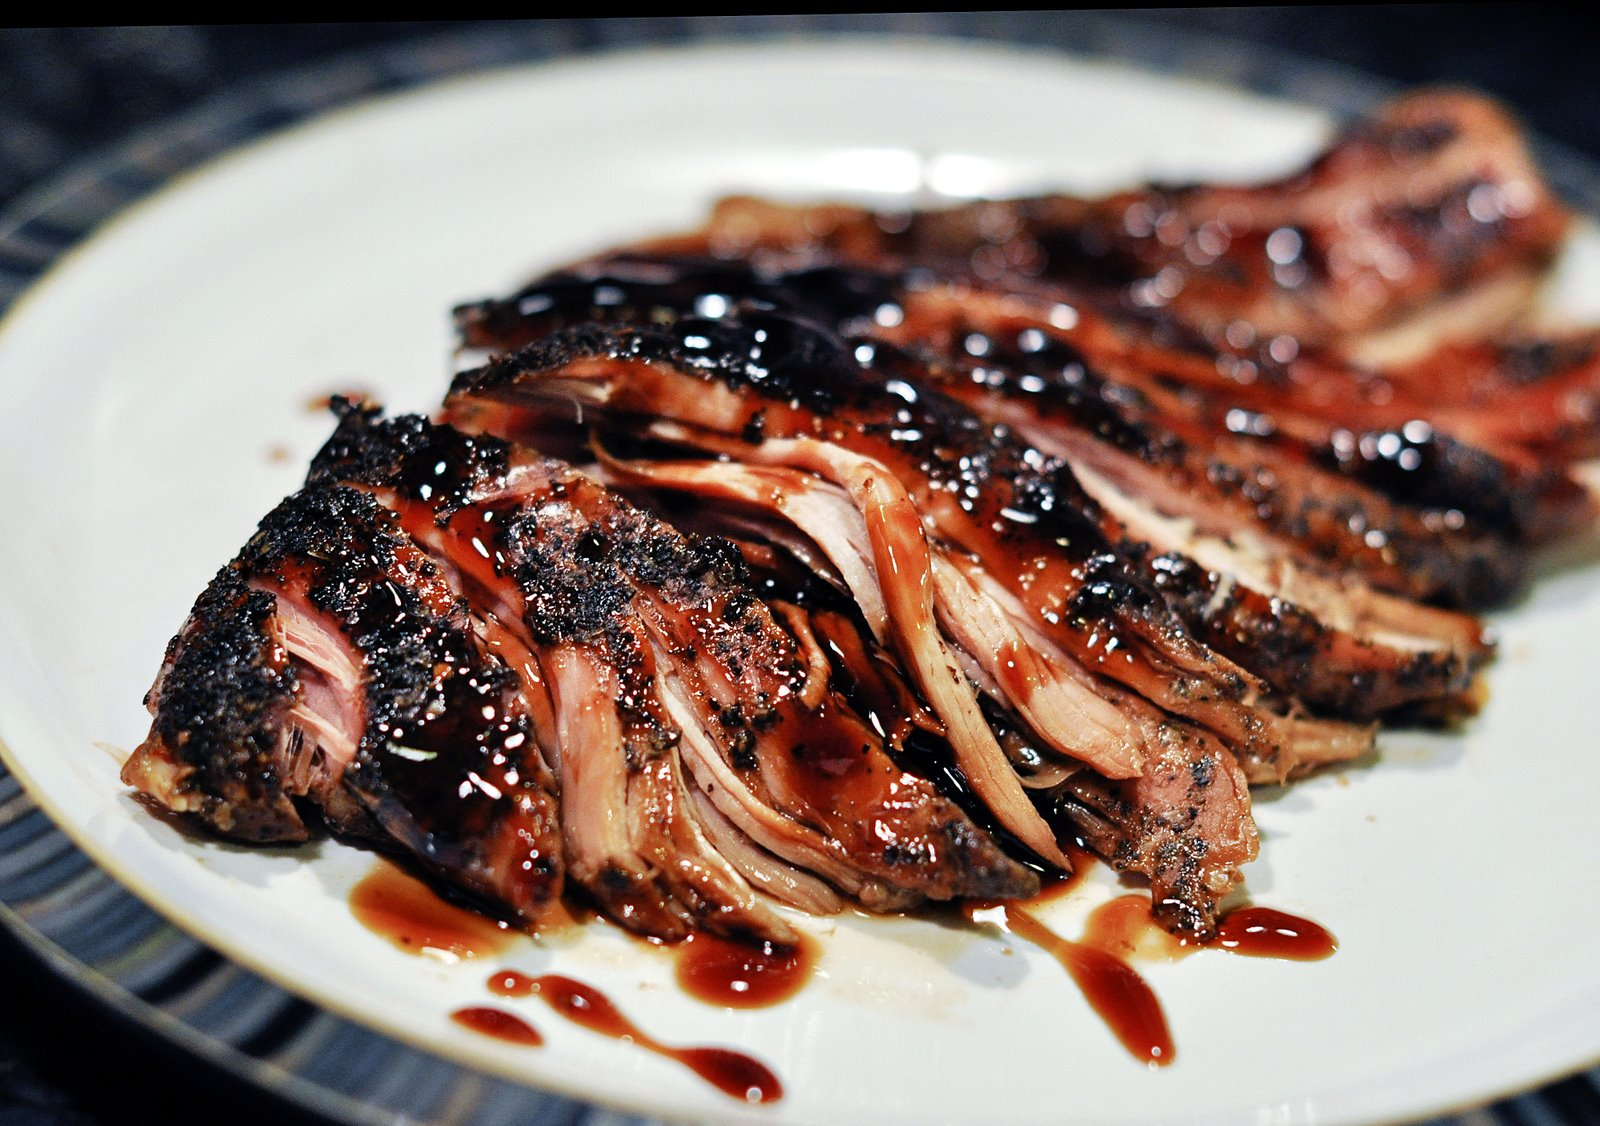 Slow oven roasted pork loin recipes